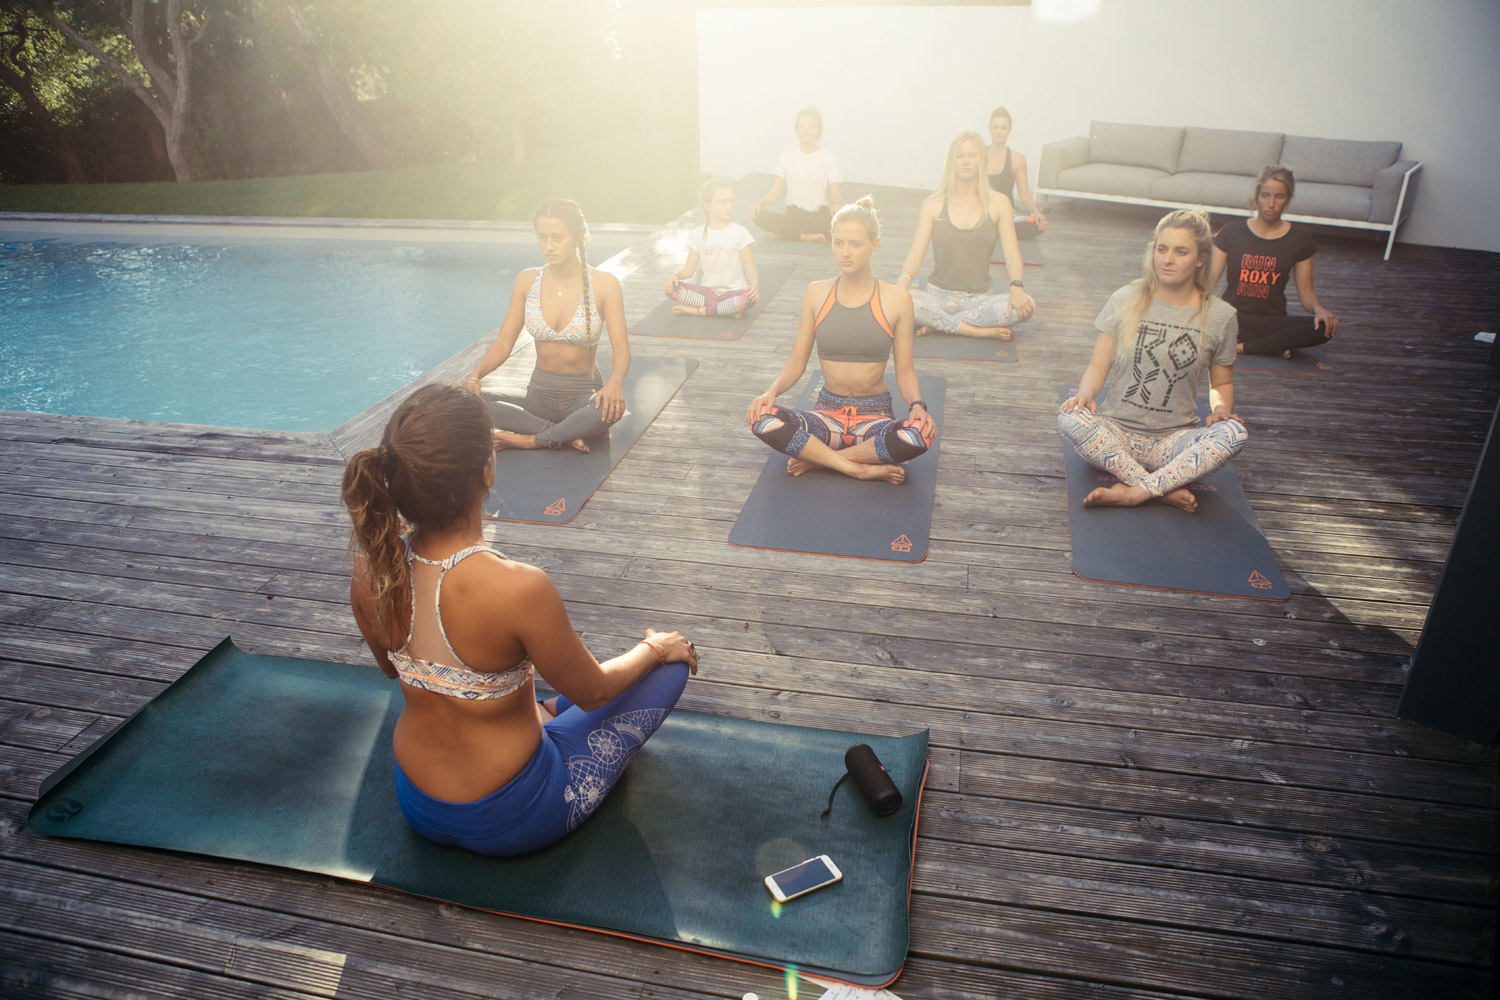 Surf. Eat. Yoga. Repeat at the #ROXYpro France